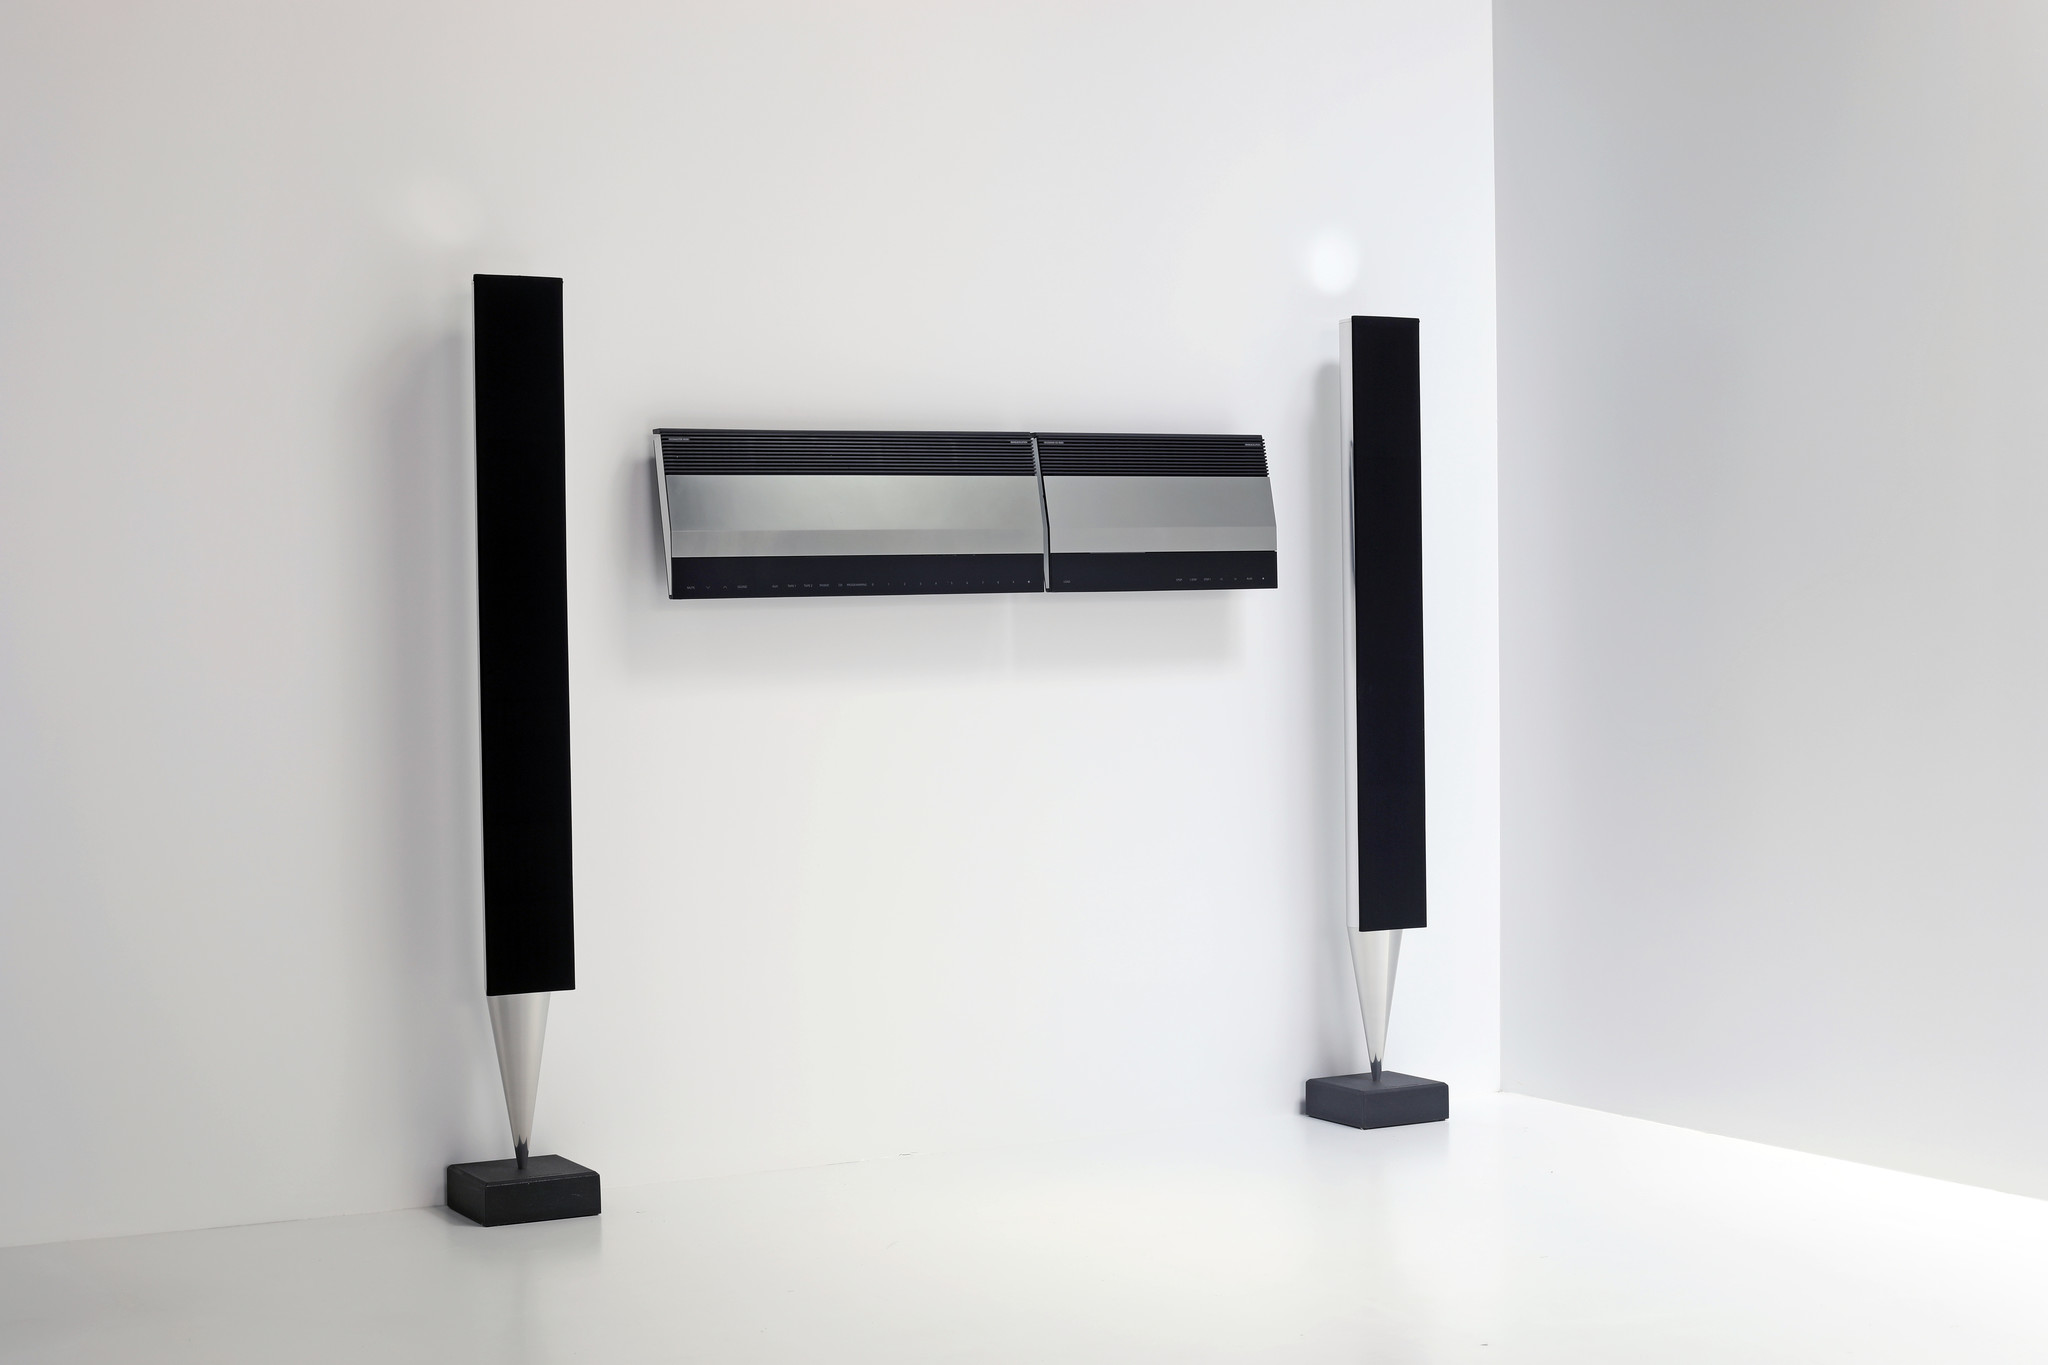 Iconic B&O set ontworpen door Jacob Jensen, 1980's